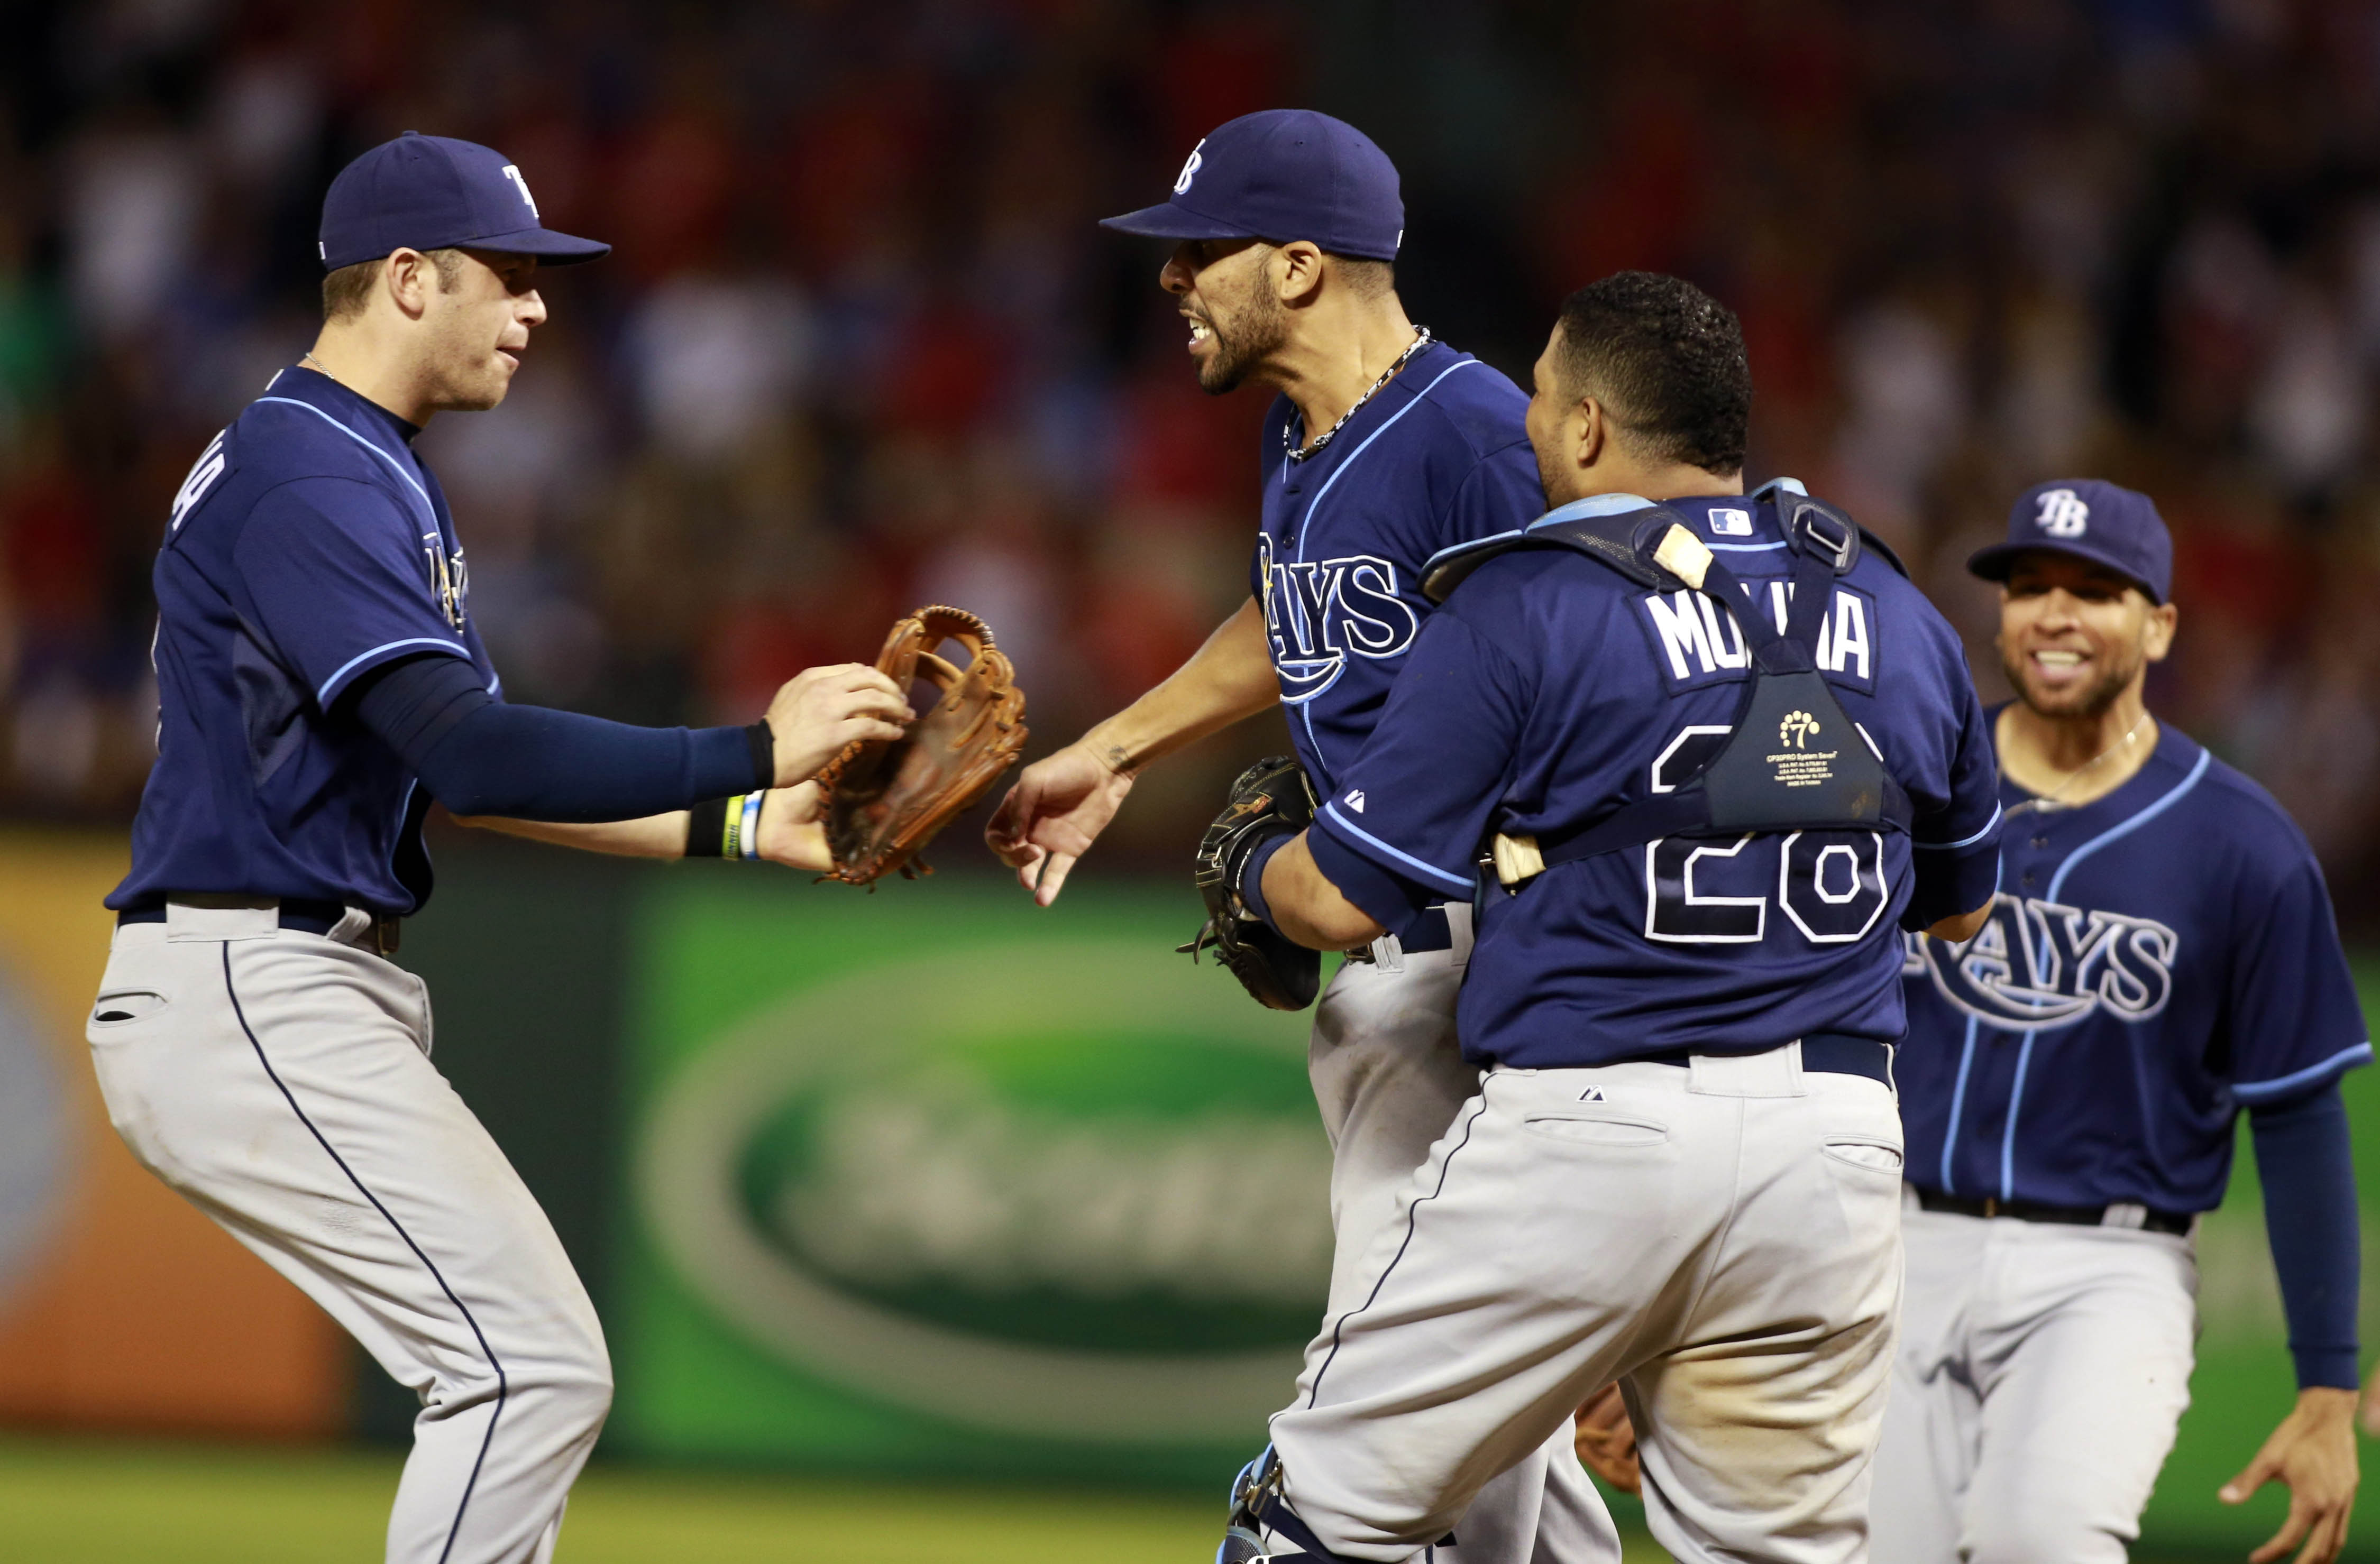 David Price (middle) and the Rays celebrate their victory over the Rangers. (USA Today)